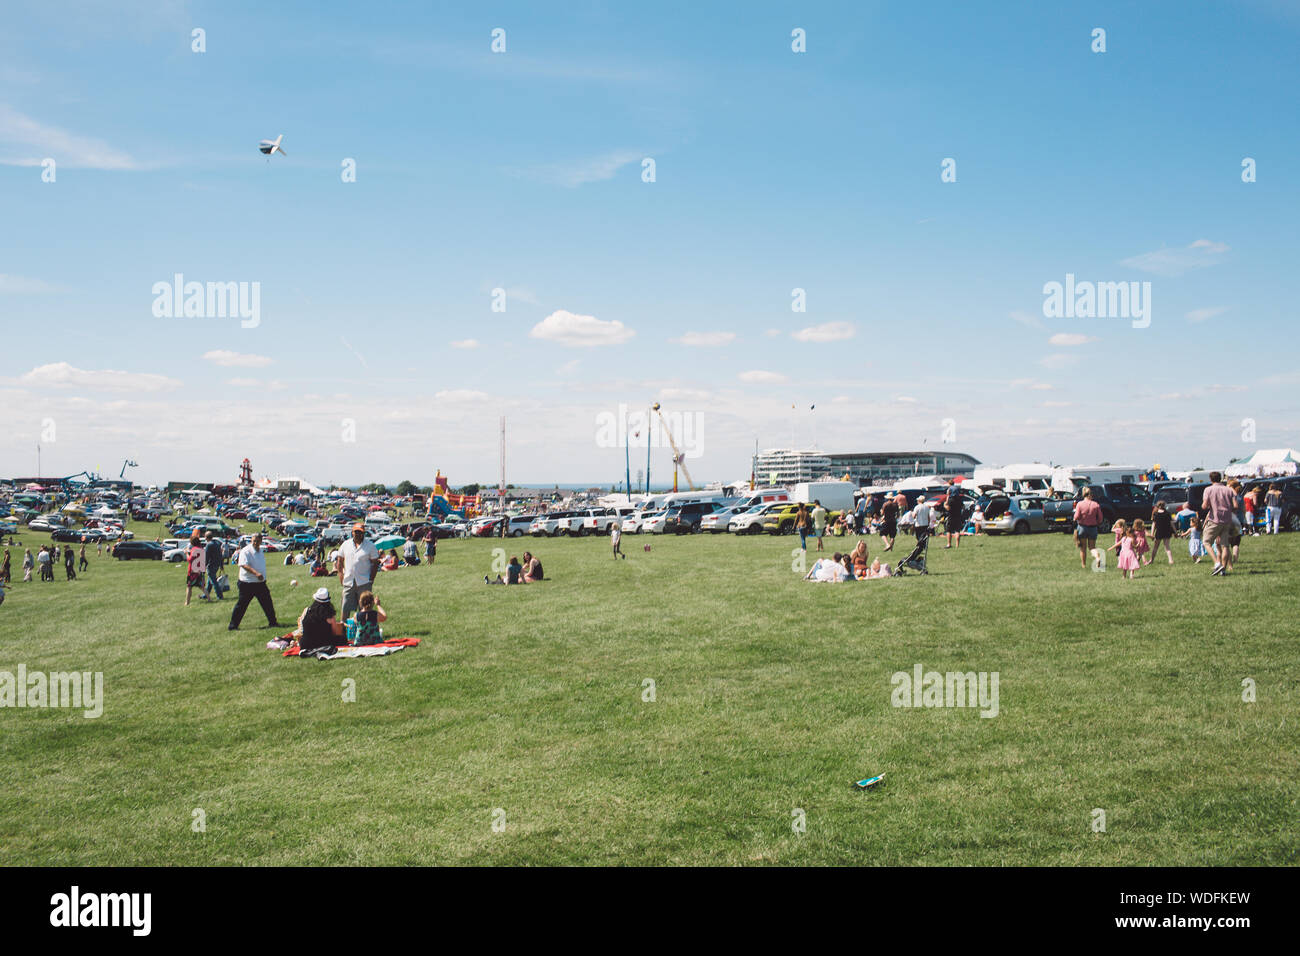 People On Field At Epsom Downs Racecourse Against Sky Stock Photo